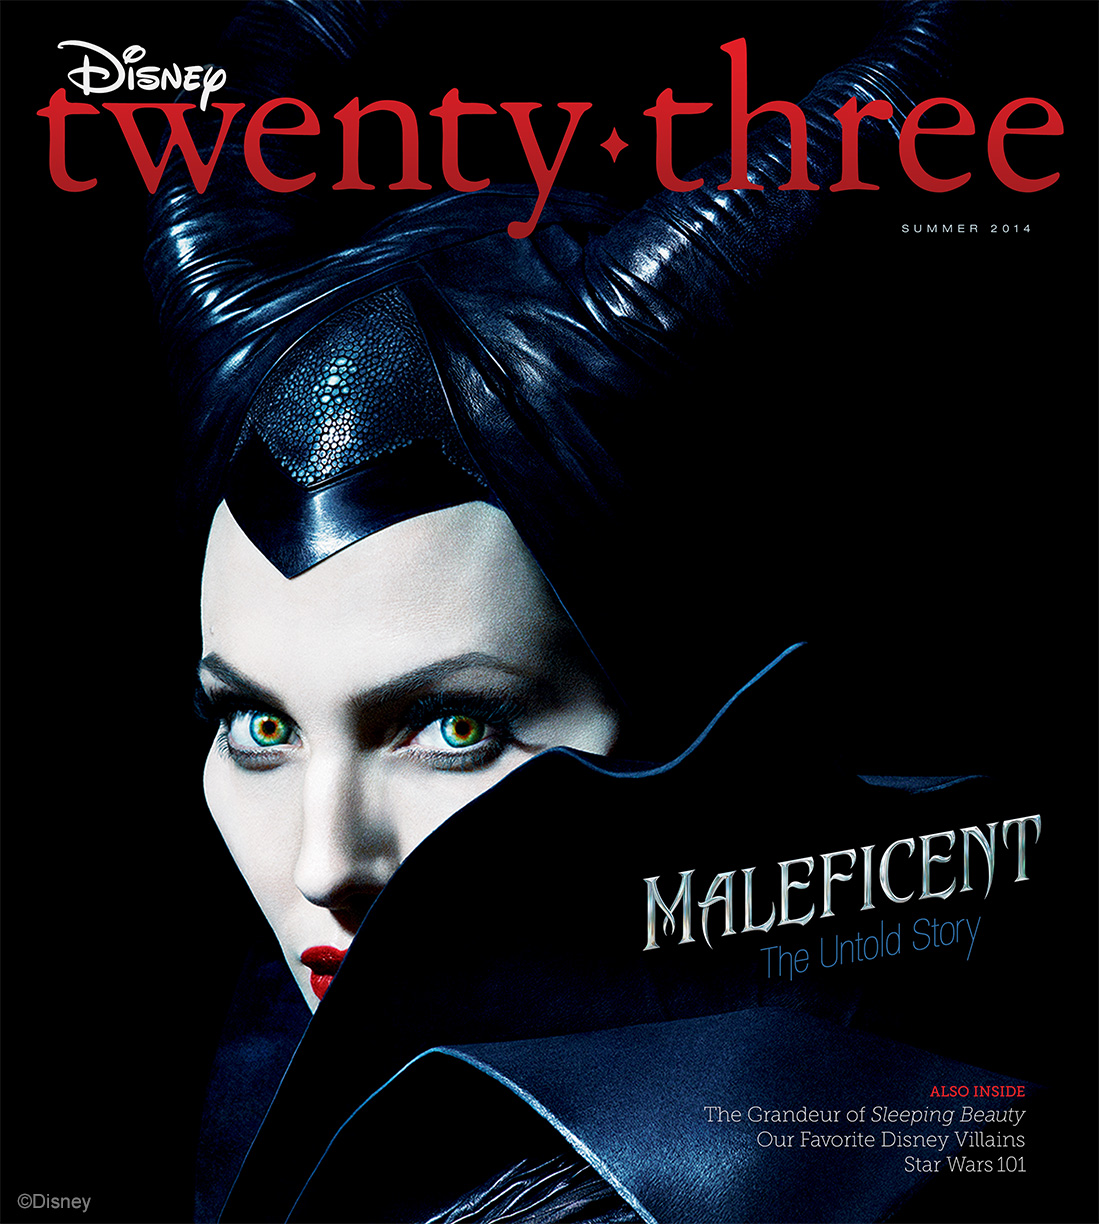 Angelina Jolie Casts a Spell As Maleficent On the Cover Of The Summer 2014 Issue of Disney Twenty-Three